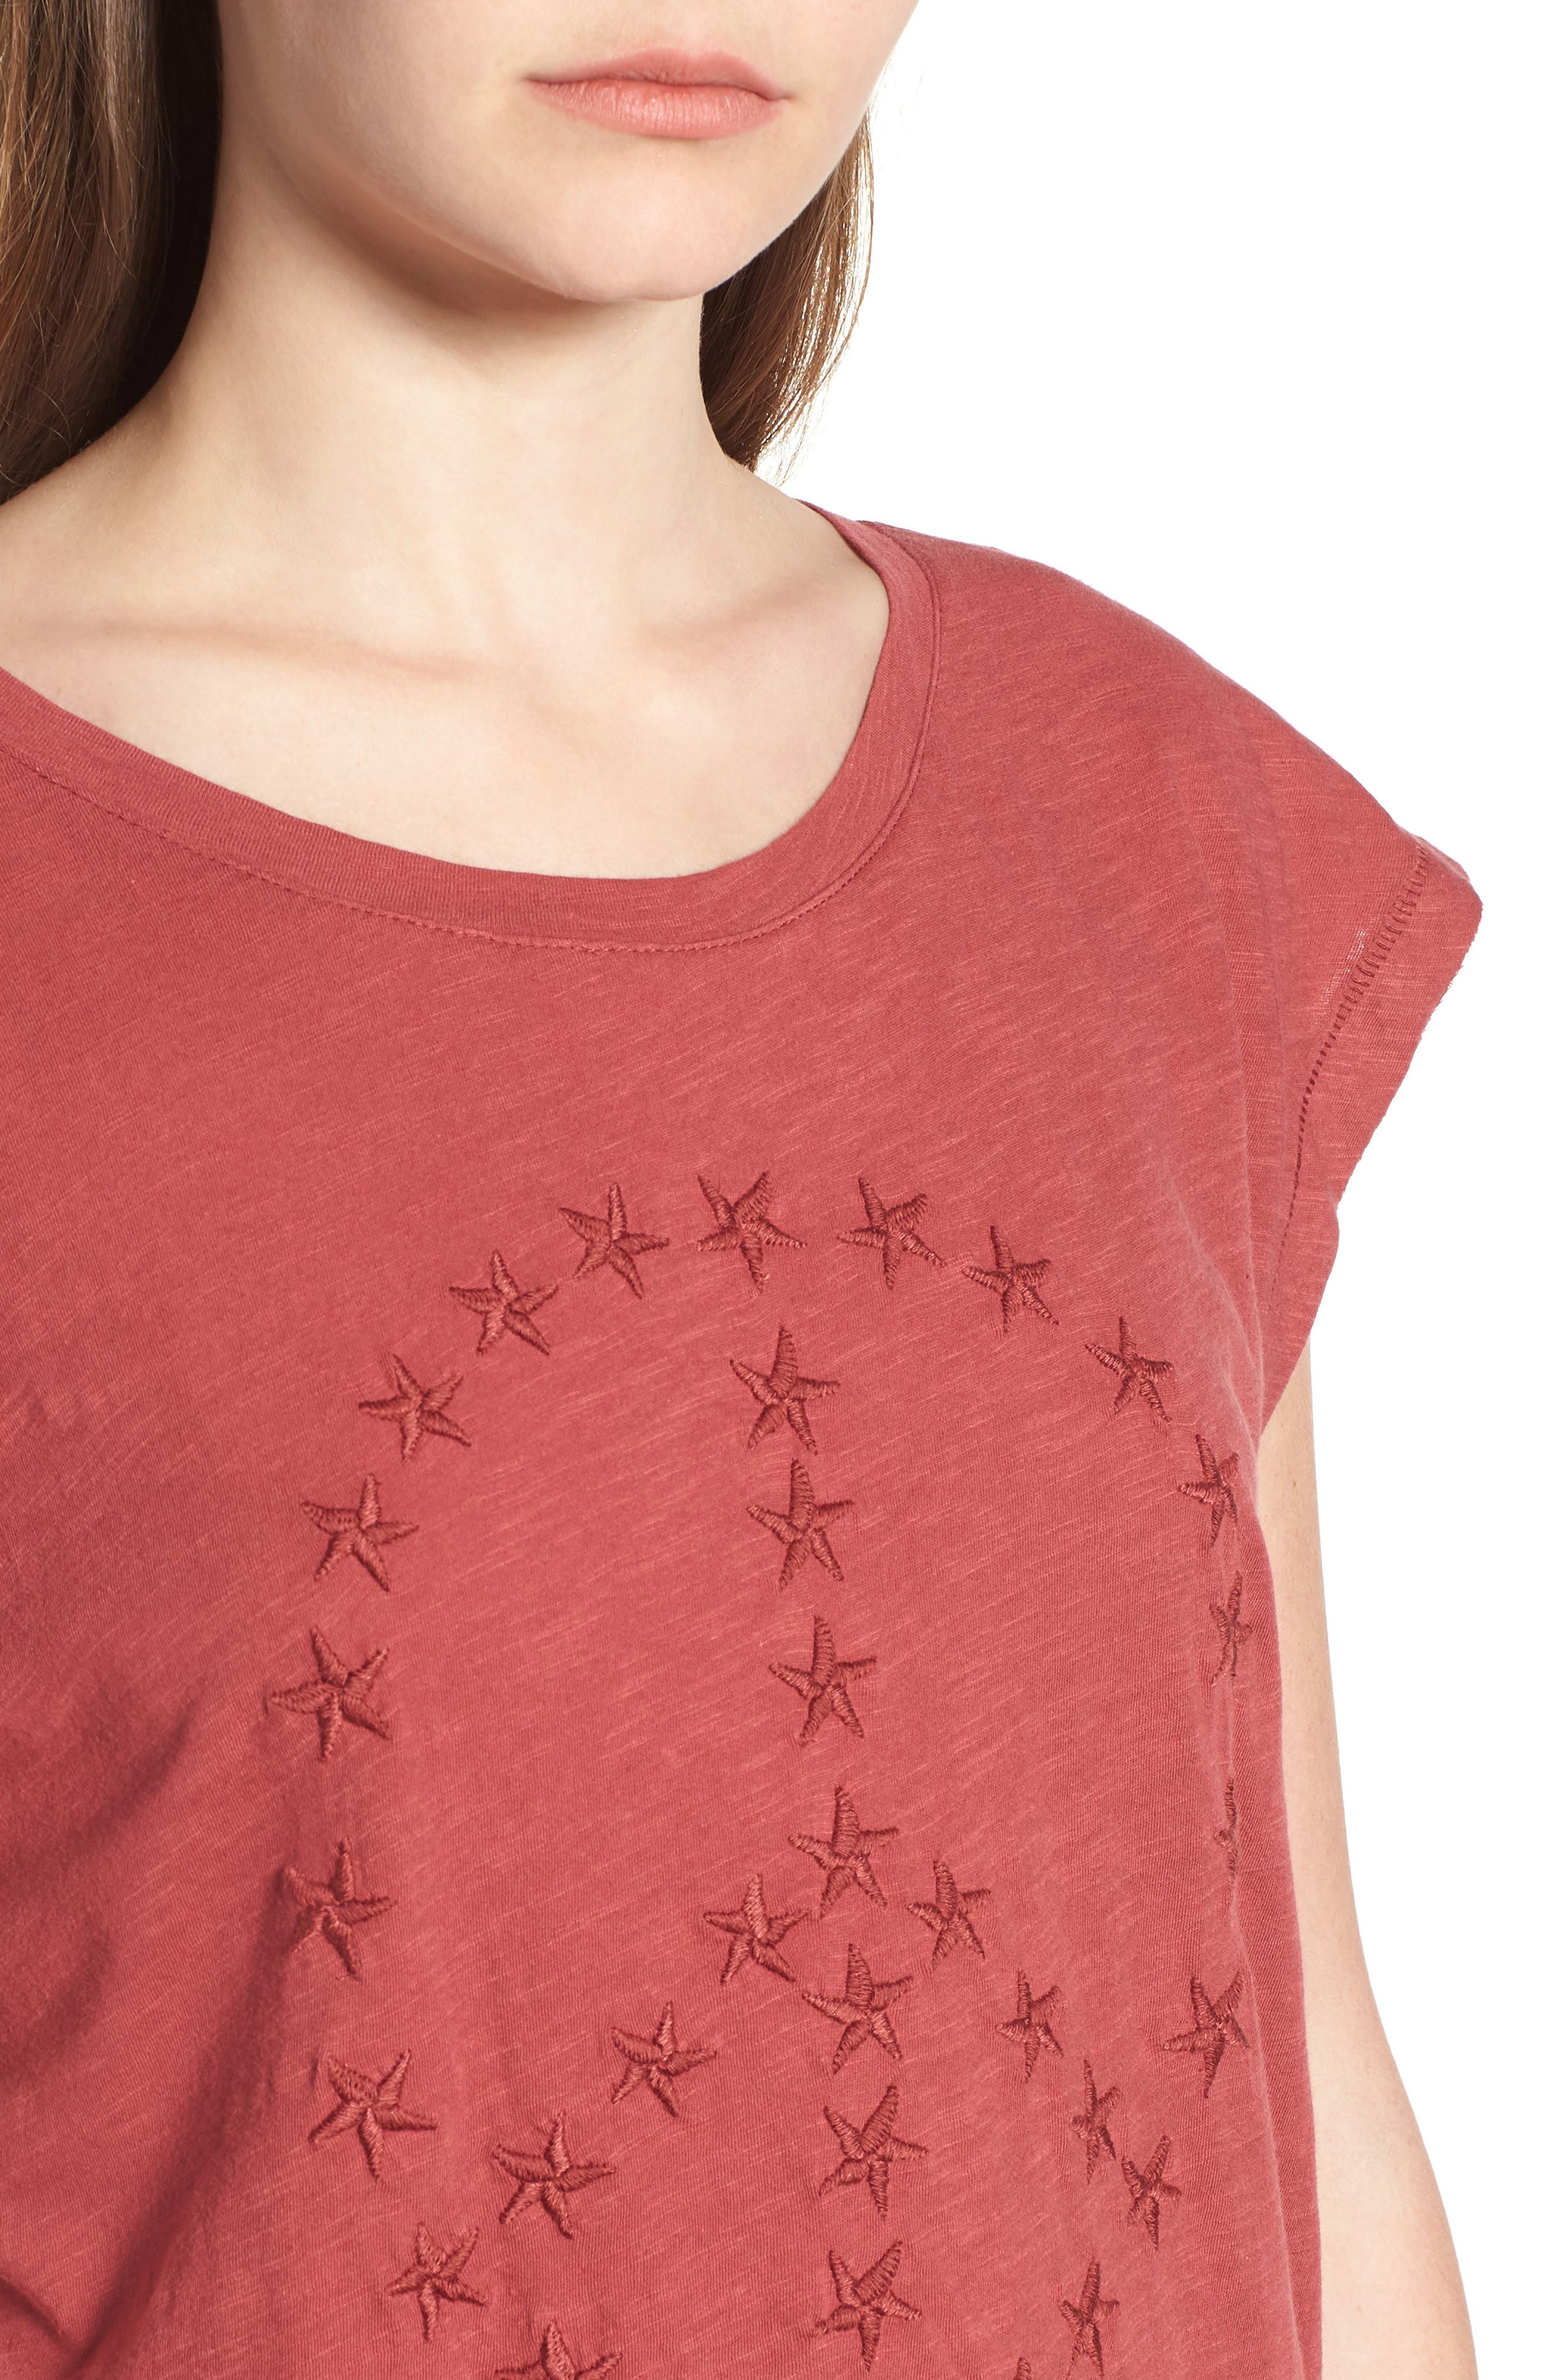 Embroidered Peace Sign Tee,                             Alternate thumbnail 4, color,                             Rosewood